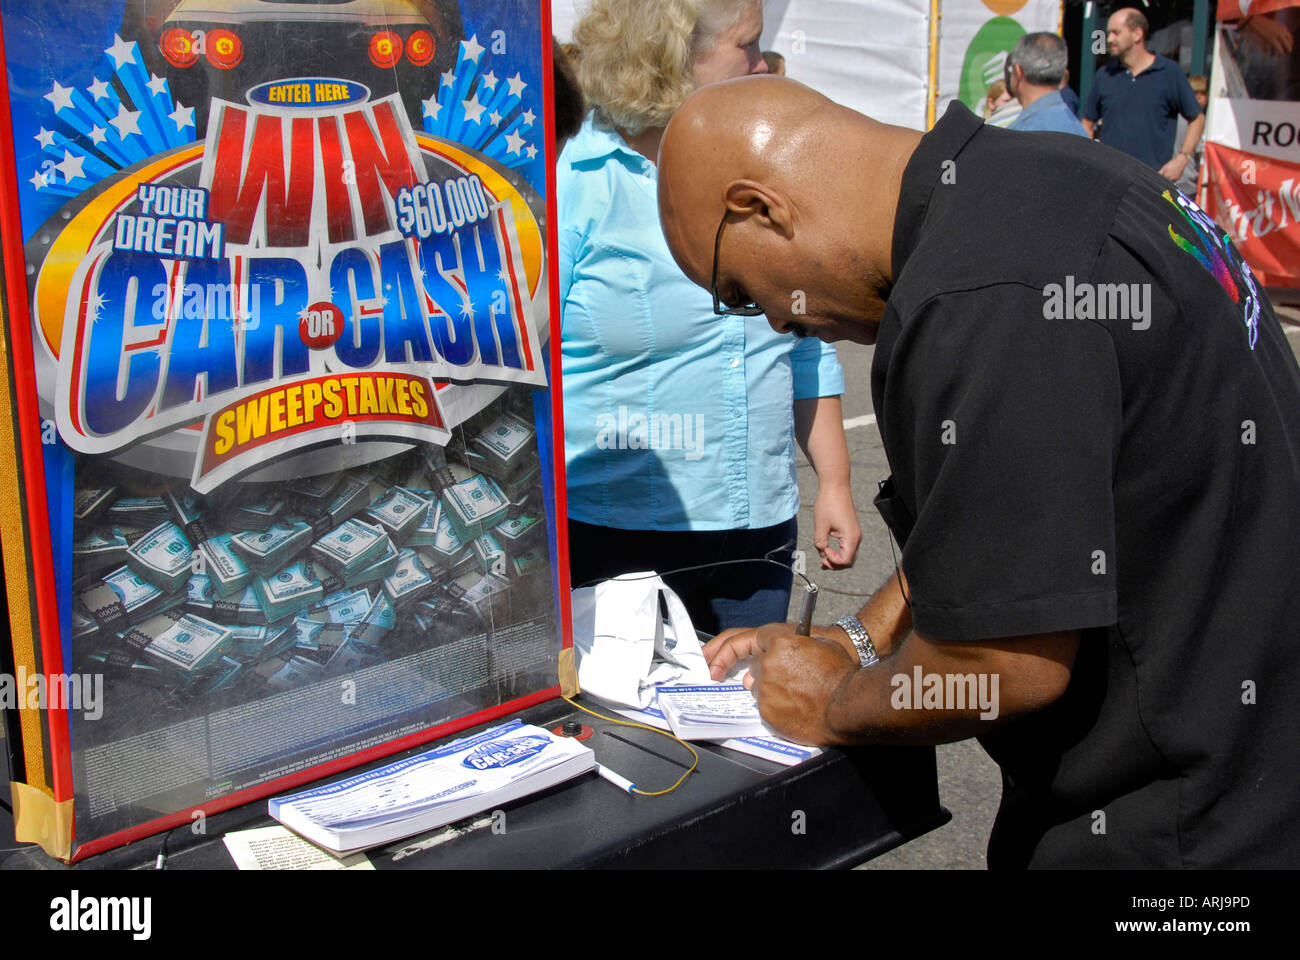 Men fill out forms and enter a chance game of sweepstakes - Stock Image